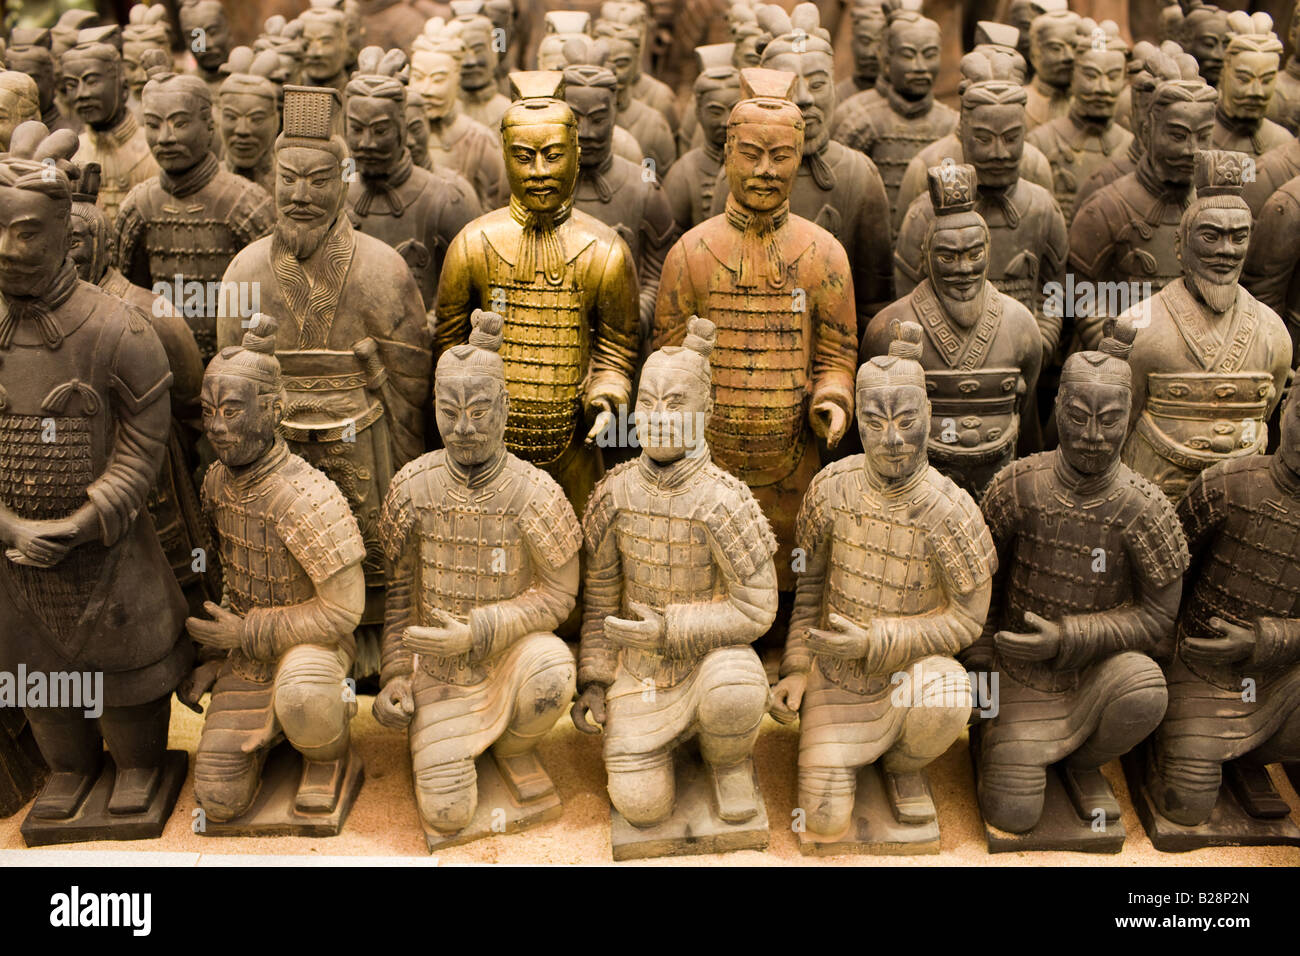 Terracotta Warrior souvenirs being made in factory Xian China Stock Photo